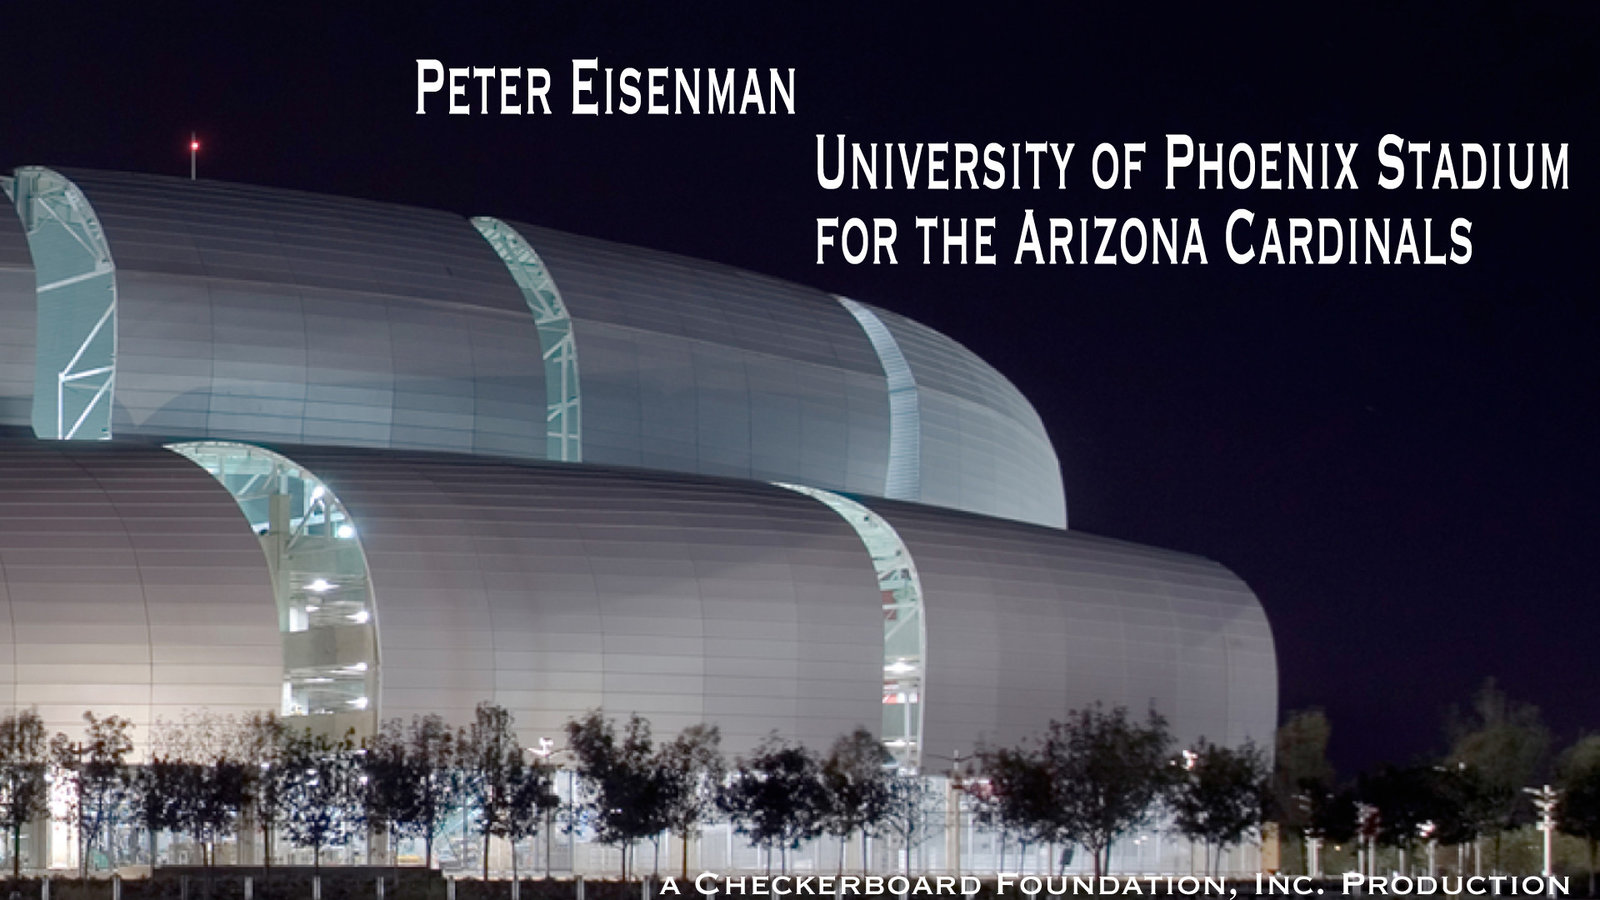 Peter Eisenman - University of Phoenix Stadium for the Arizona Cardinals